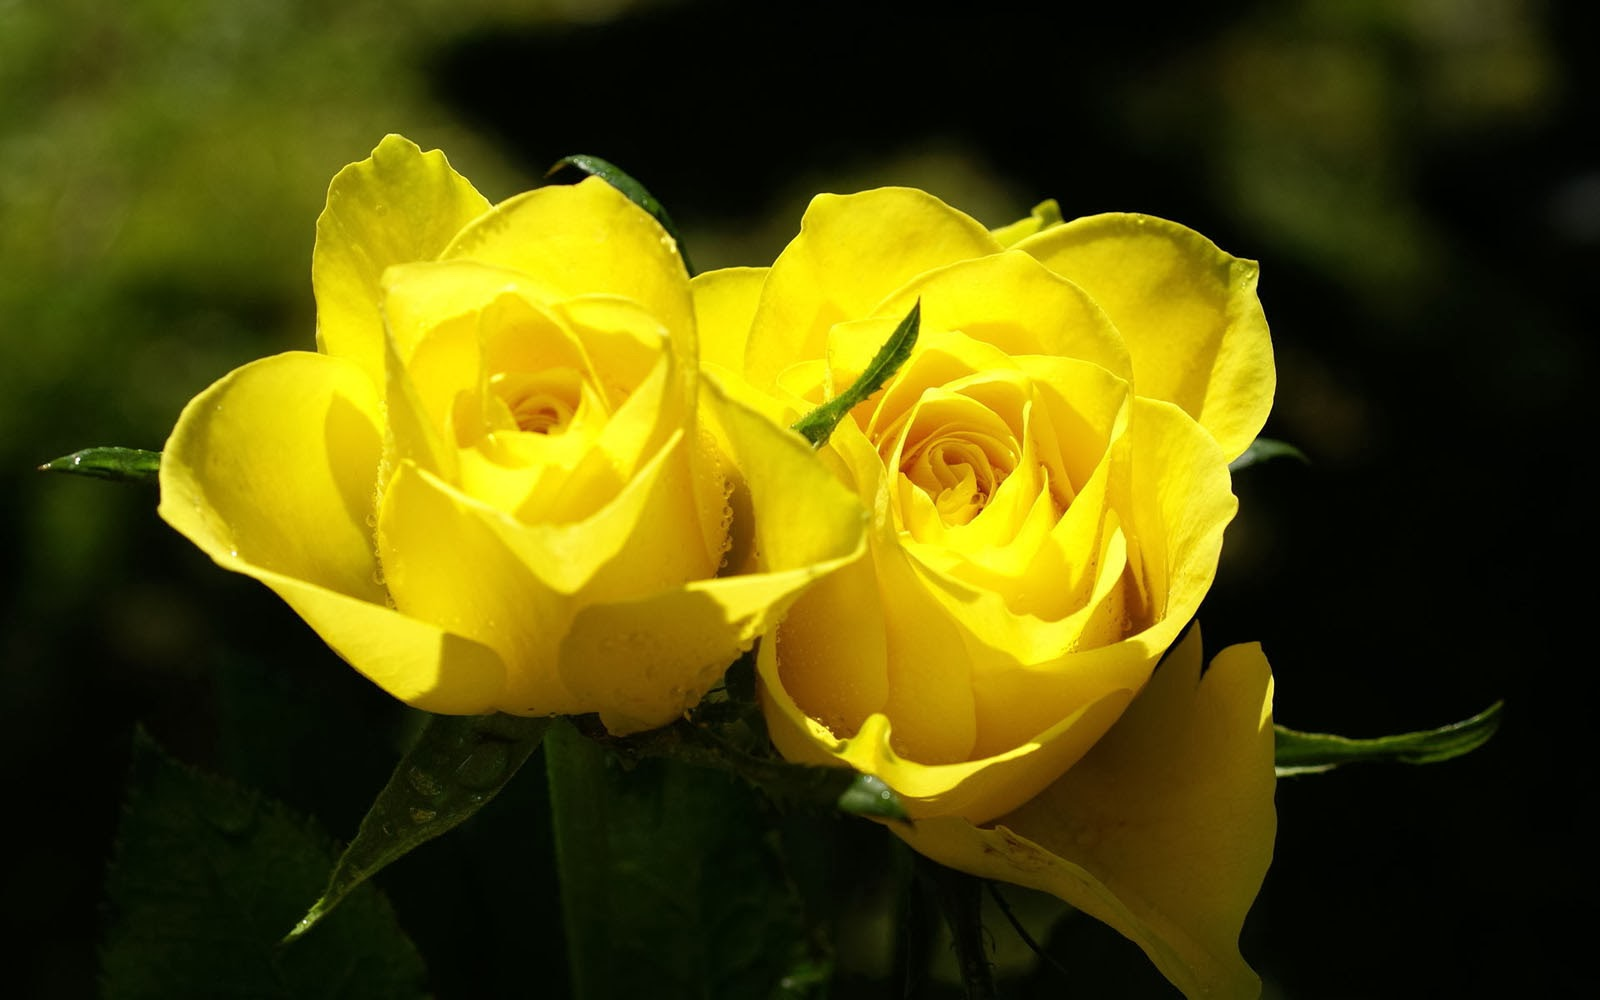 wallpaper of yellow roses - photo #3